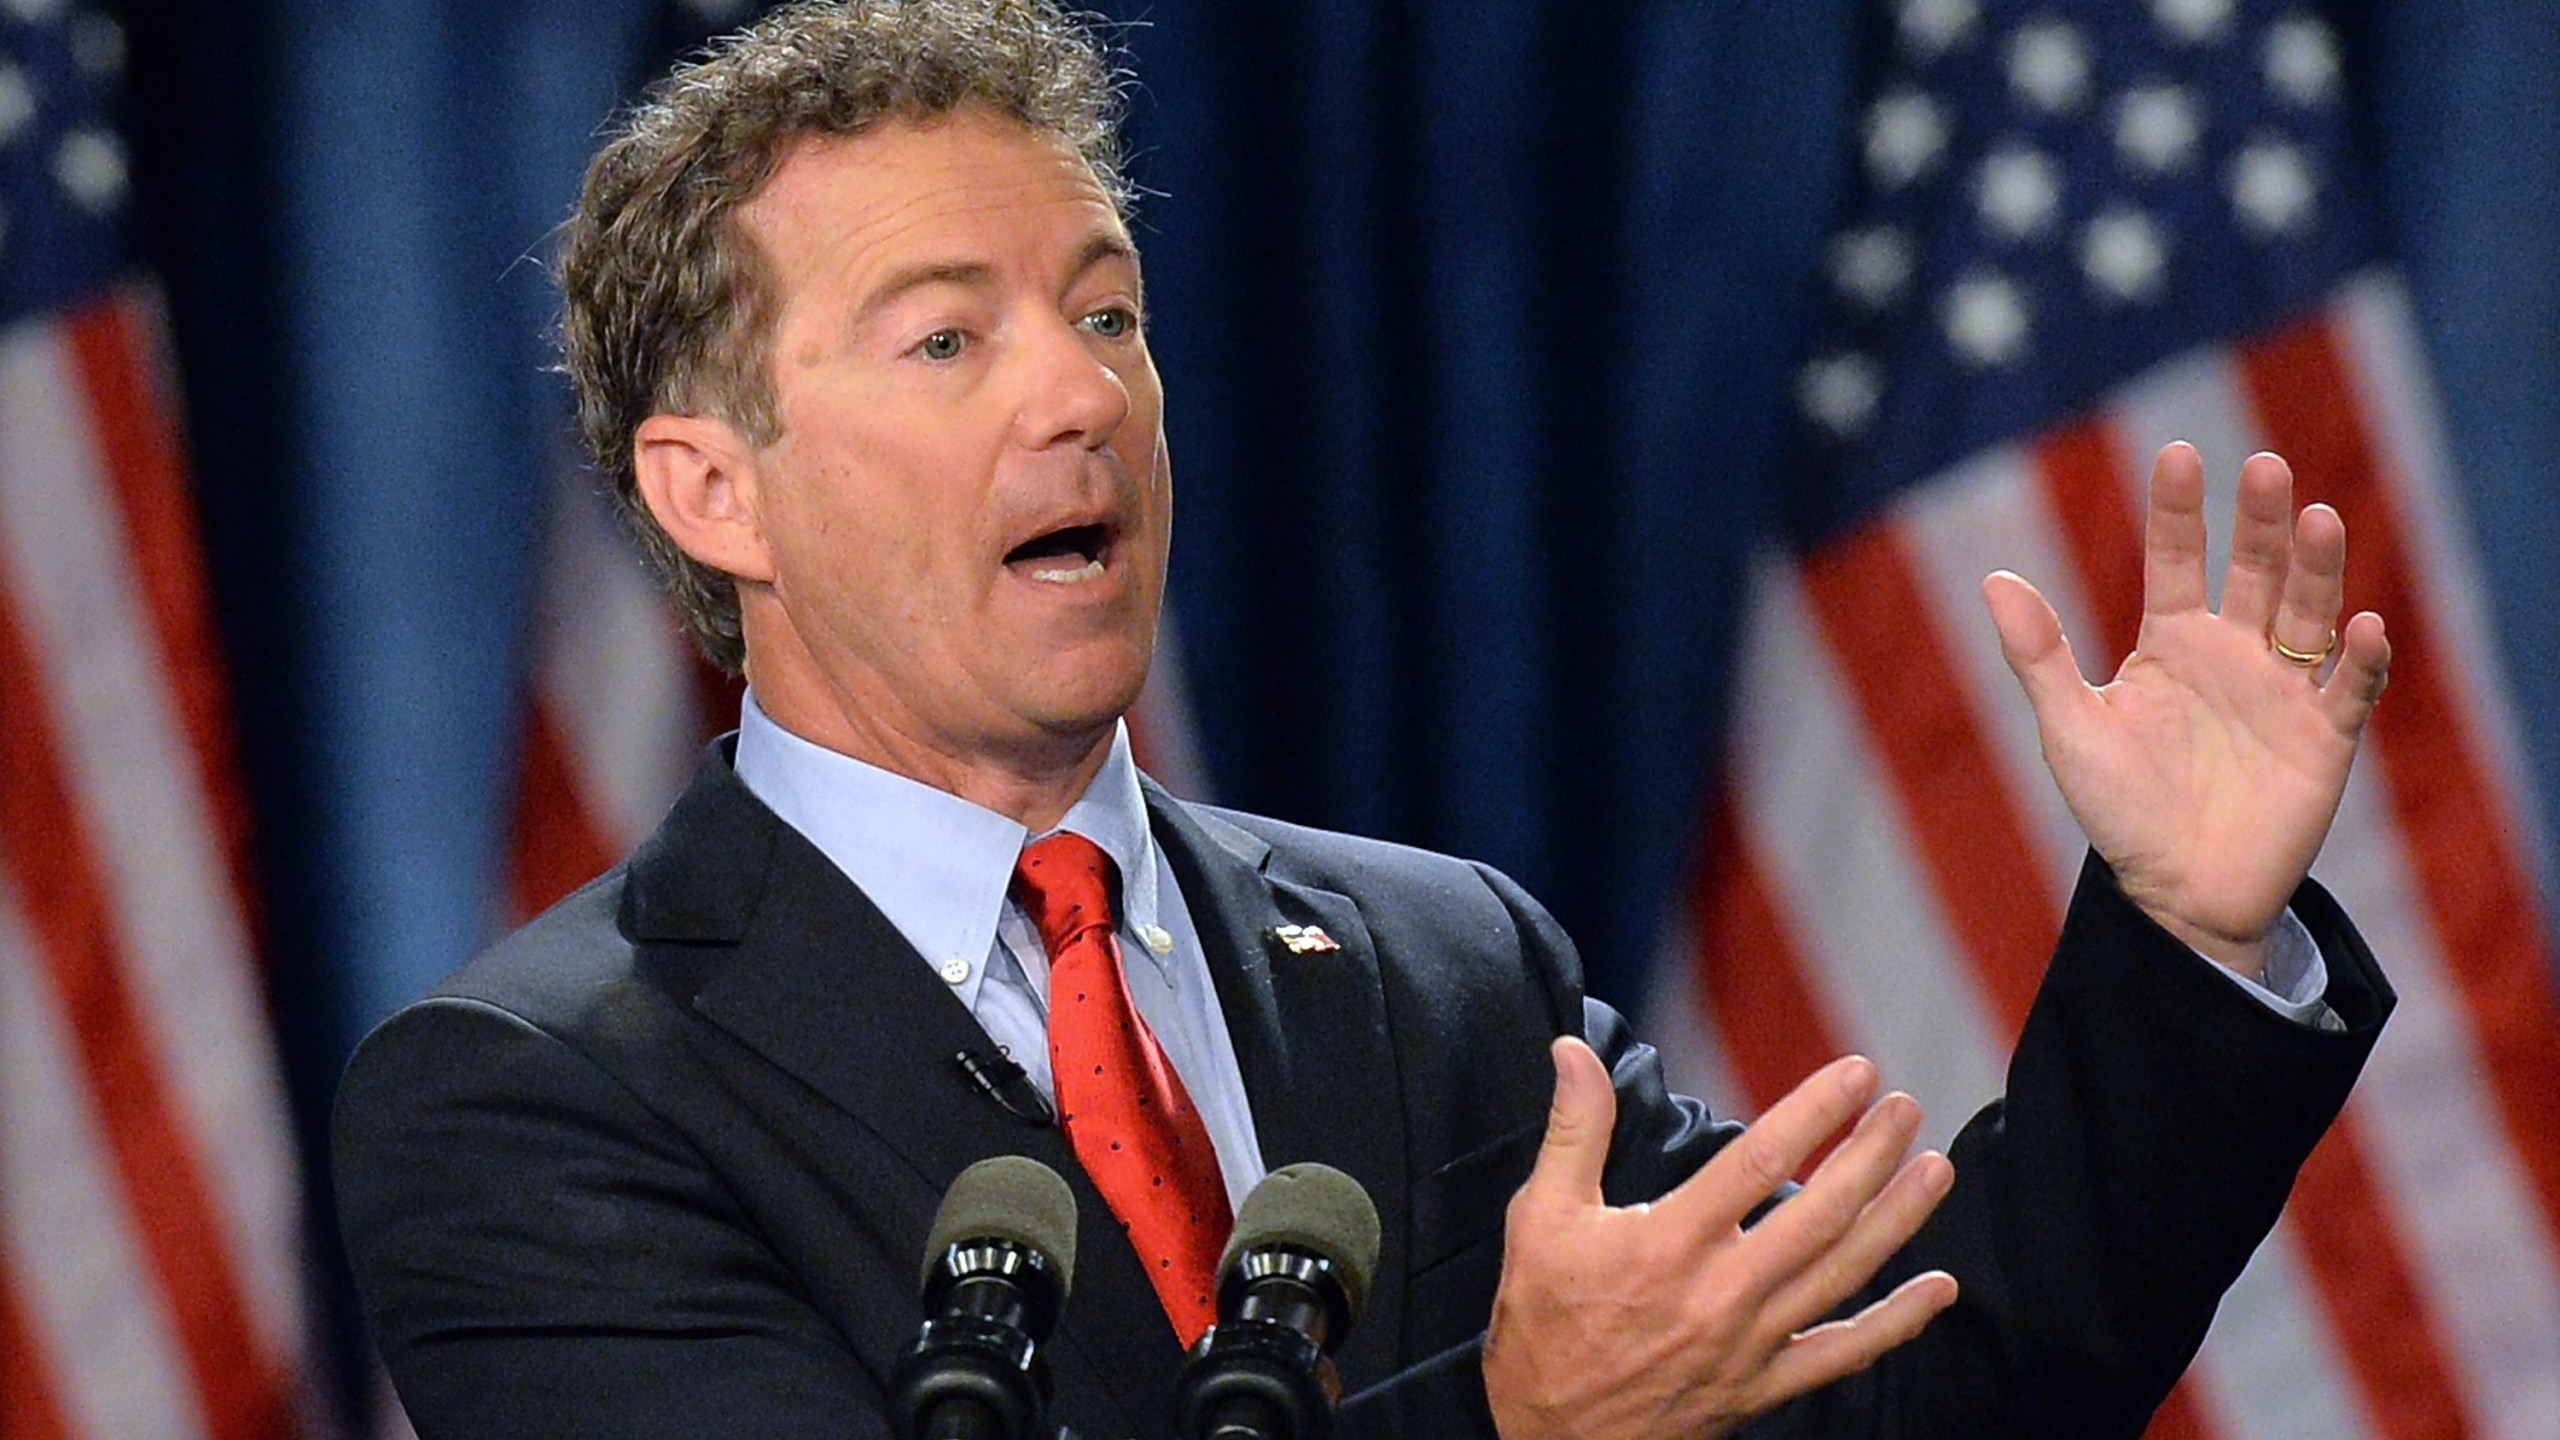 Senator Rand Paul speaks during the kickoff of the National Stand with Rand tour on April 7, 2015, in Louisville, Kentucky. (credit: Michael B. Thomas/AFP/Getty Images)